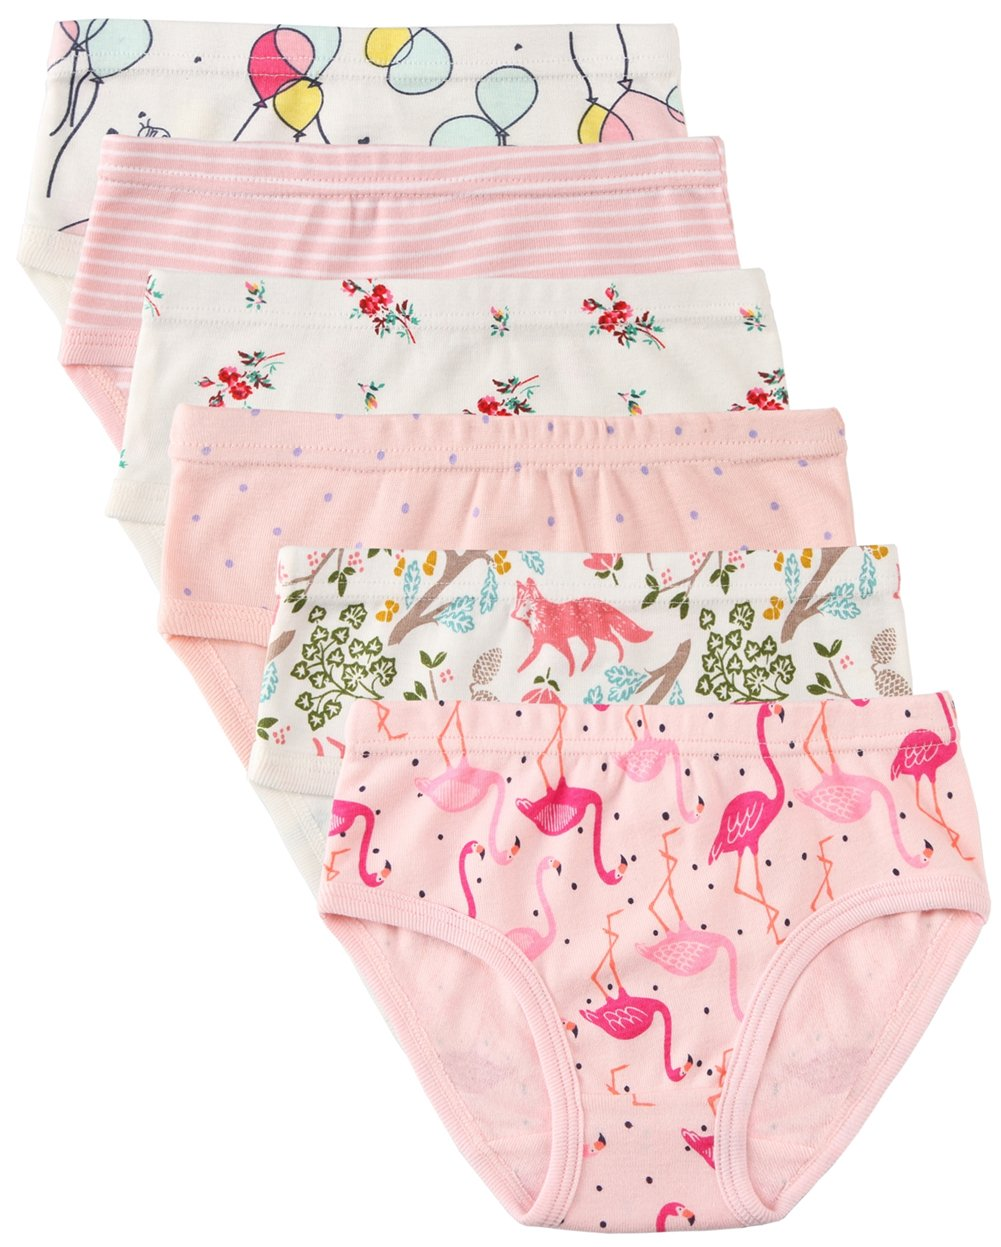 6 Pack Little Girl Underwear Cotton Fit Age 1-7, Baby Girls Panties Toddler Girl's Undies (Flamingo, 5-6 Years/Waist 18.1'',Height 46''-48'') by Cotton Talk (Image #1)